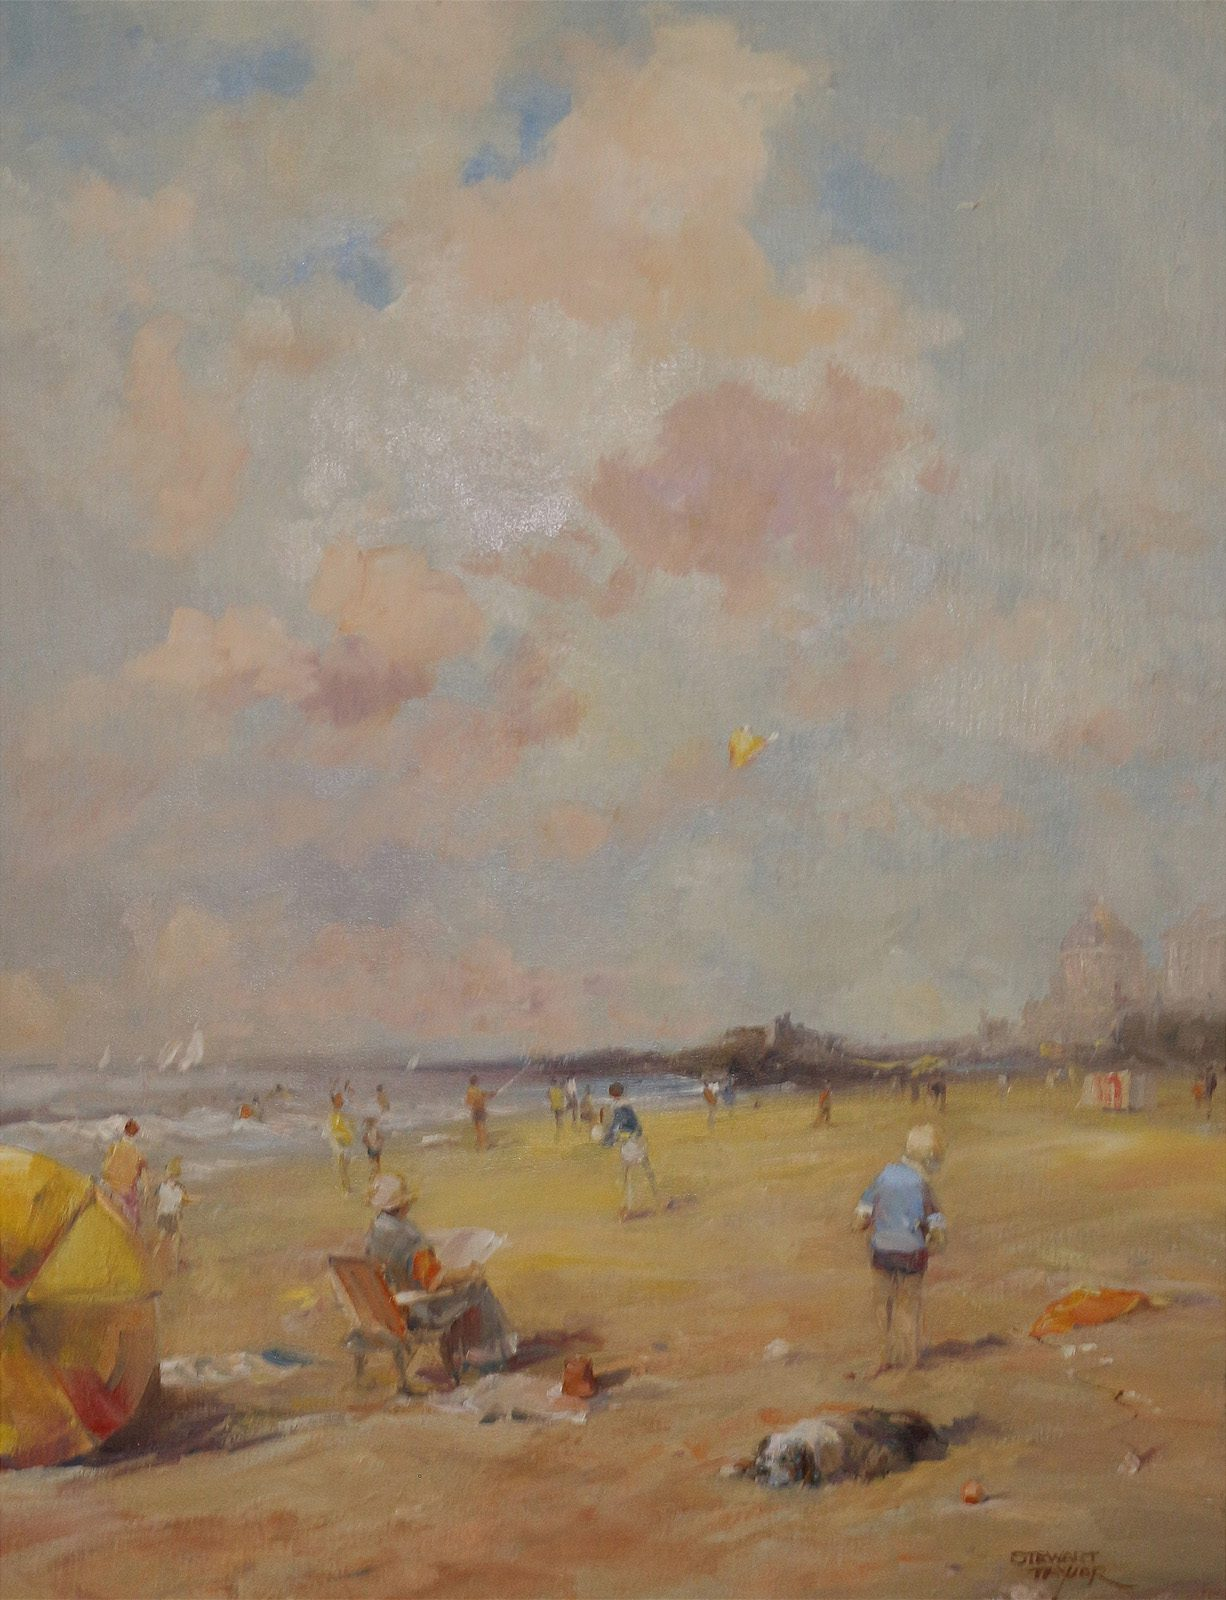 Nostalgic summer beach scene of holidaymakers painted in oils by East Yorkshire artist Stewart Taylor